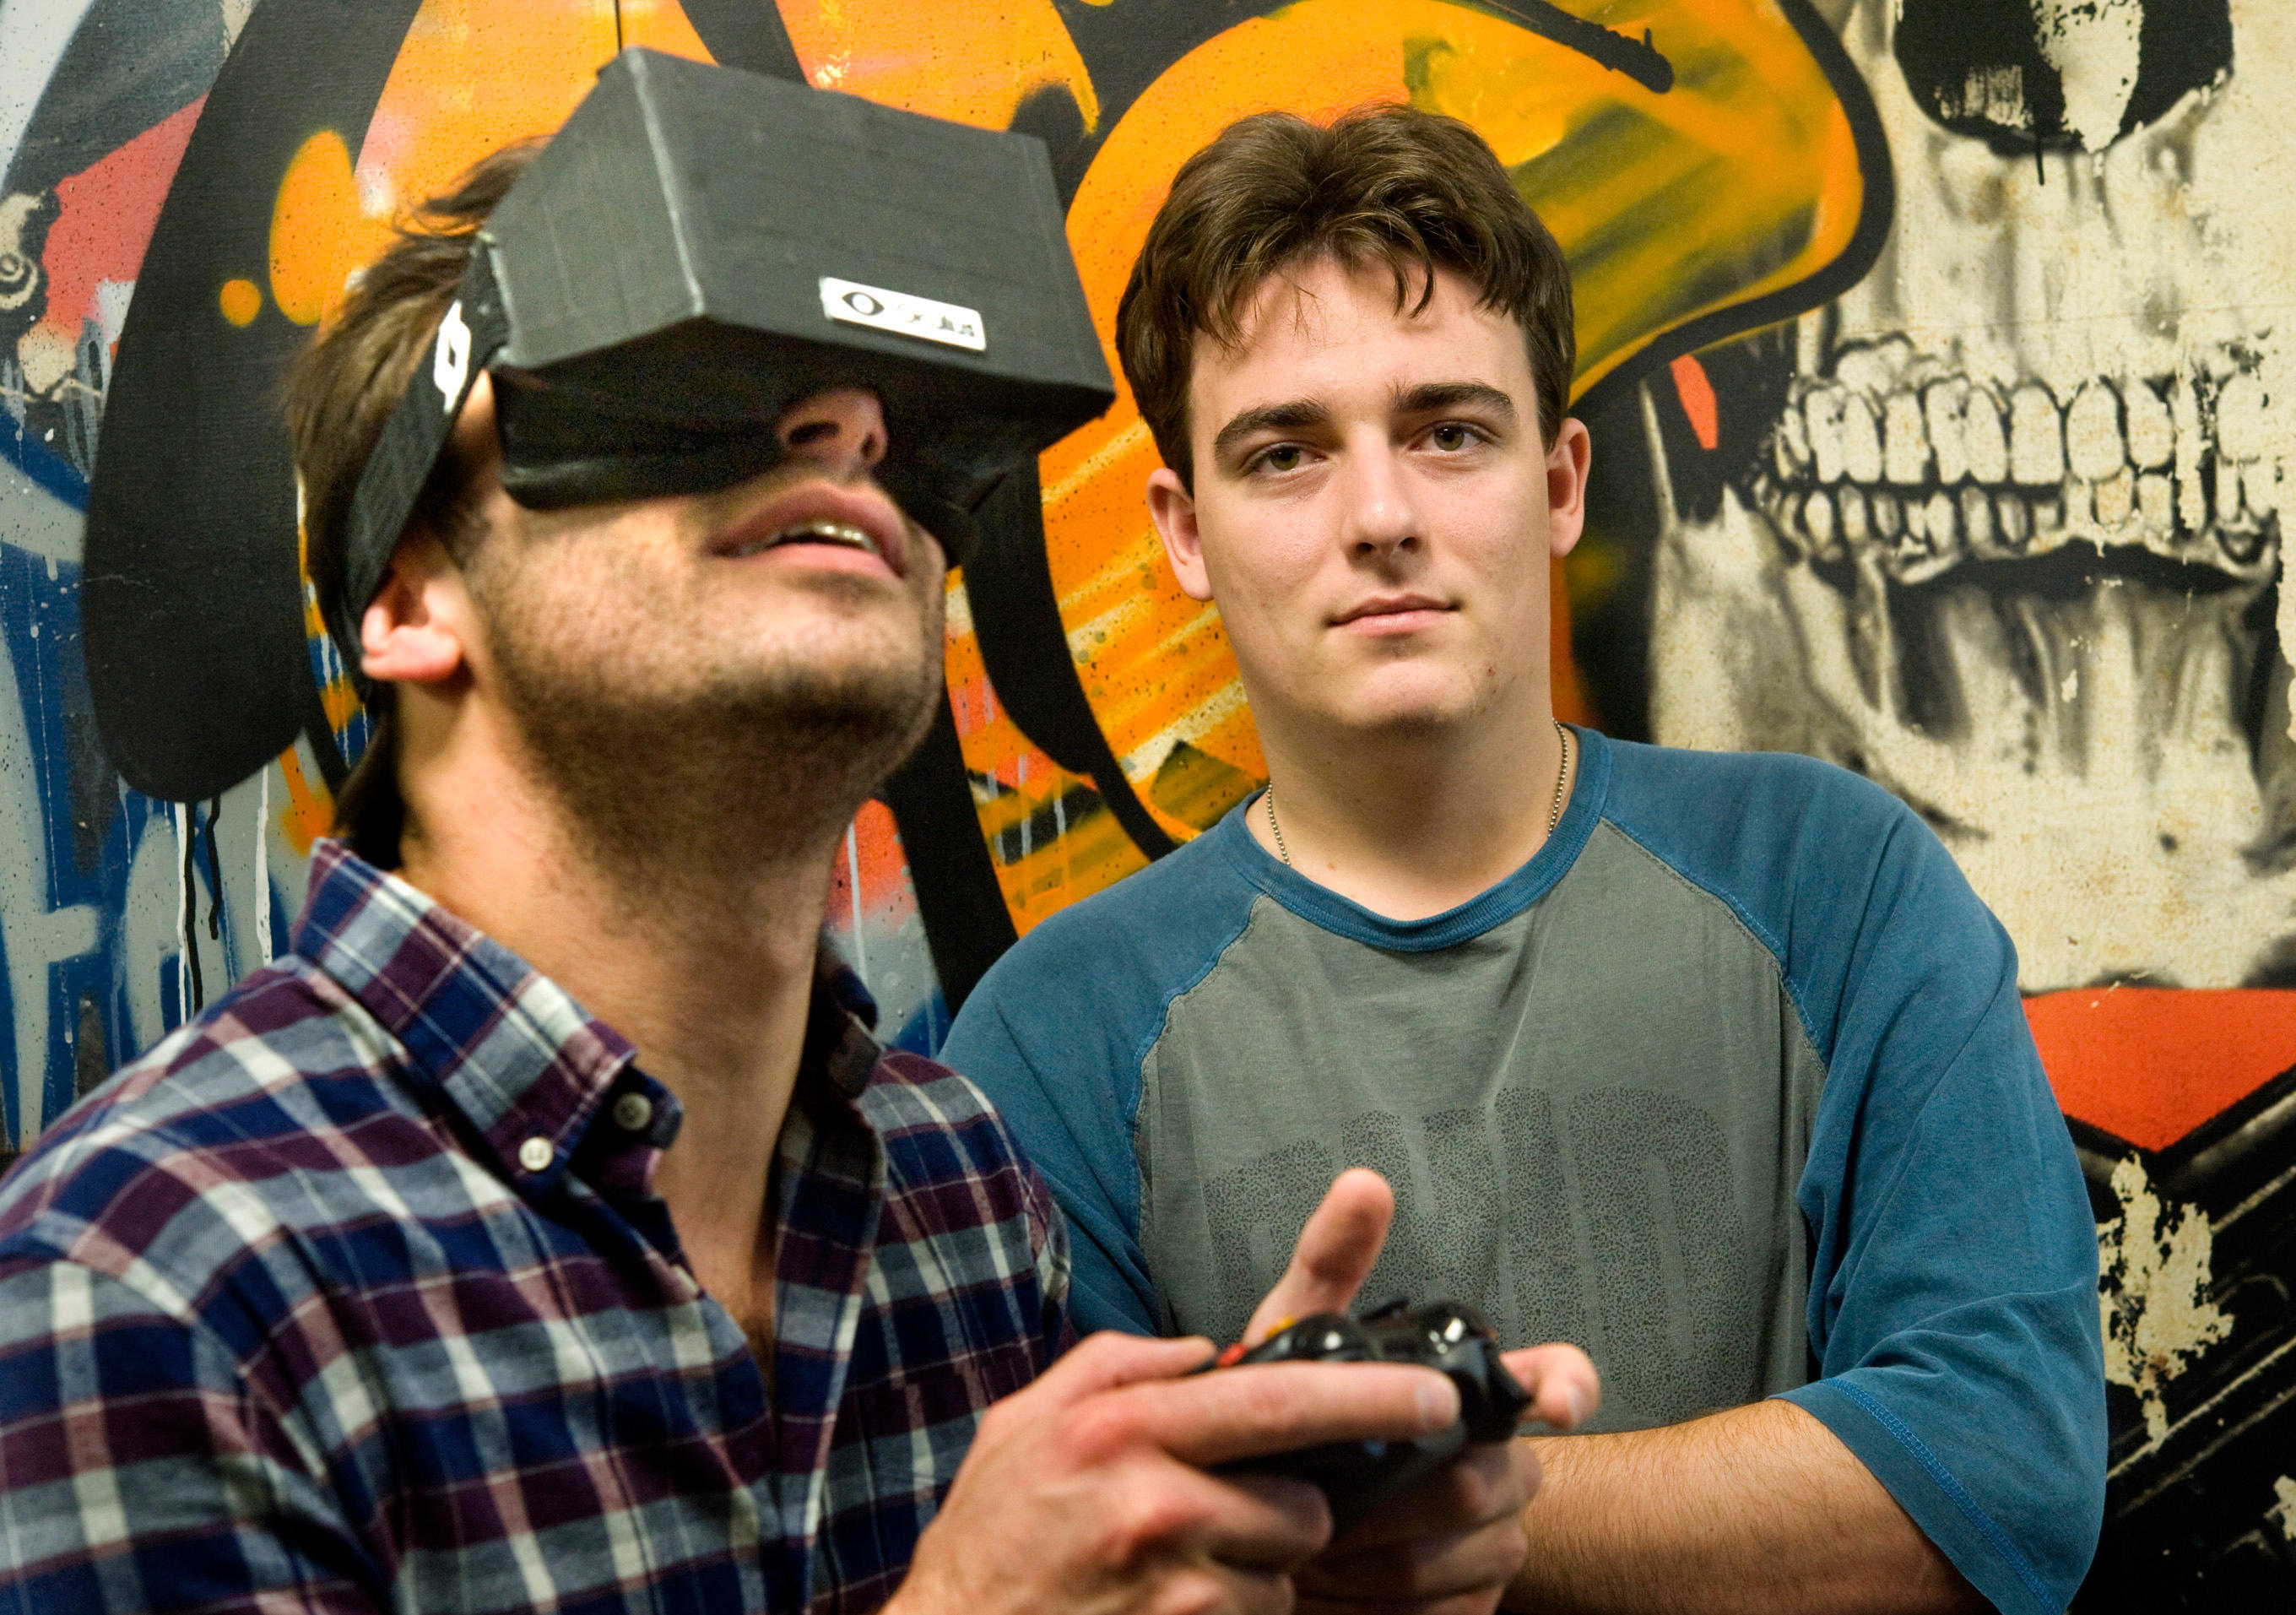 Nov. 14, 2011 - Irvine, California, U.S. - Oculus VR founder Palmer Luckey, 20, right, is the inventor of a virtual reality gami